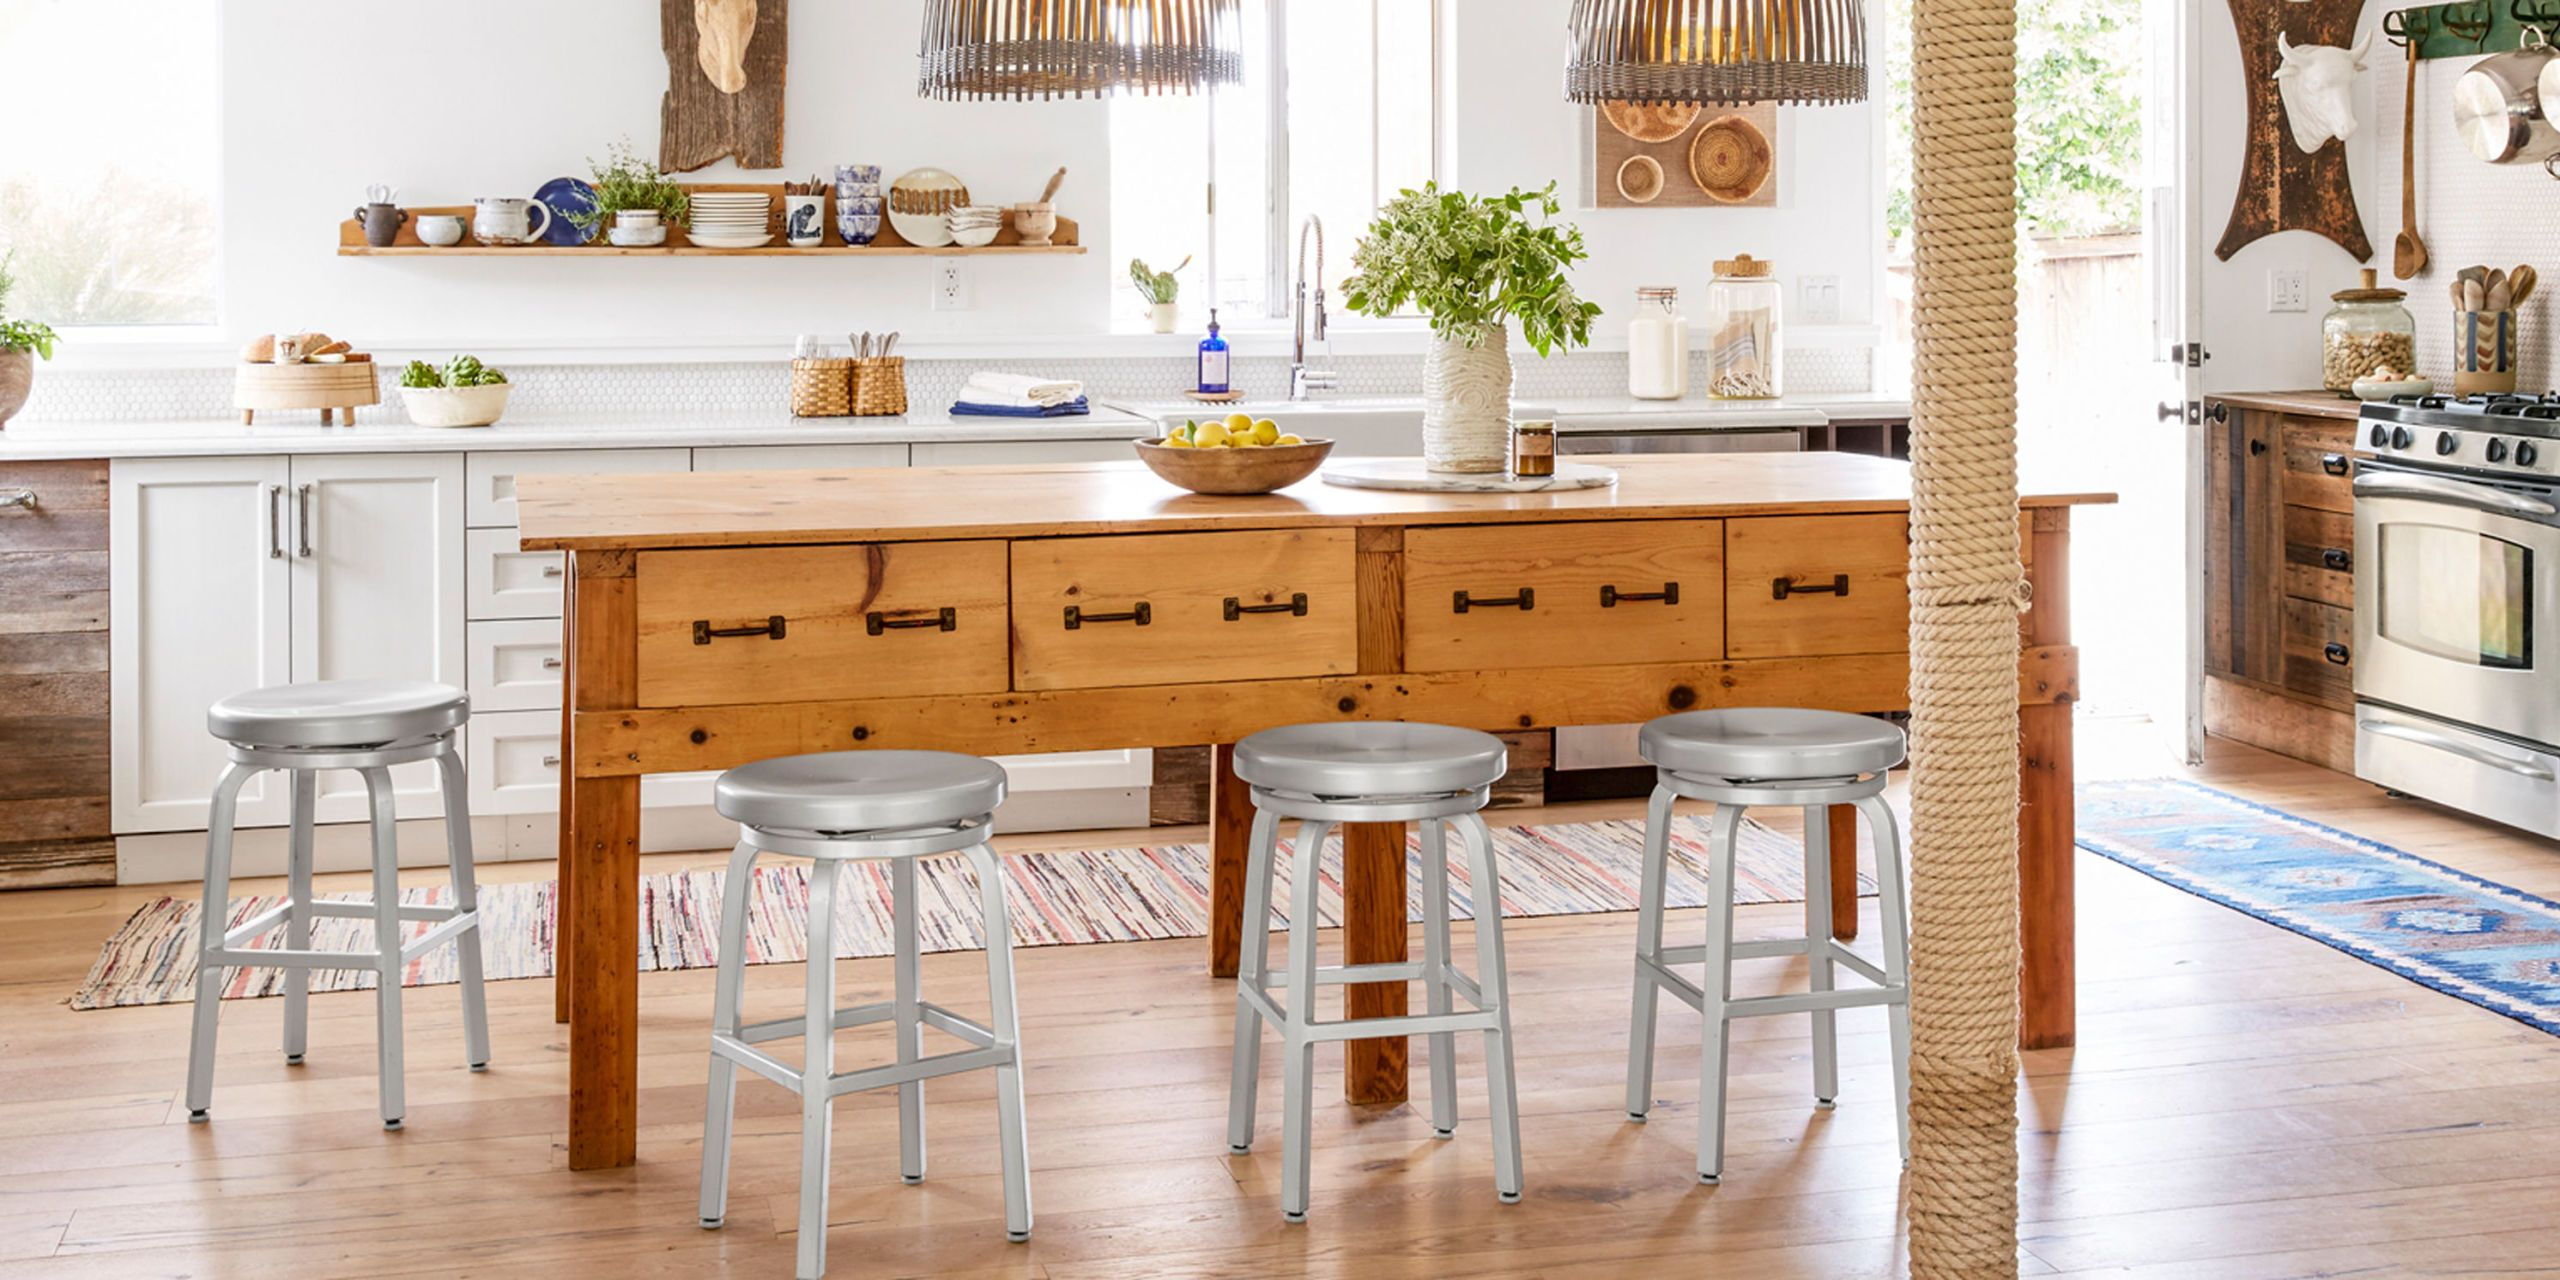 Incroyable Looking To Refresh Your Kitchen? Try One Of These Stunning Kitchen Island  Ideas.